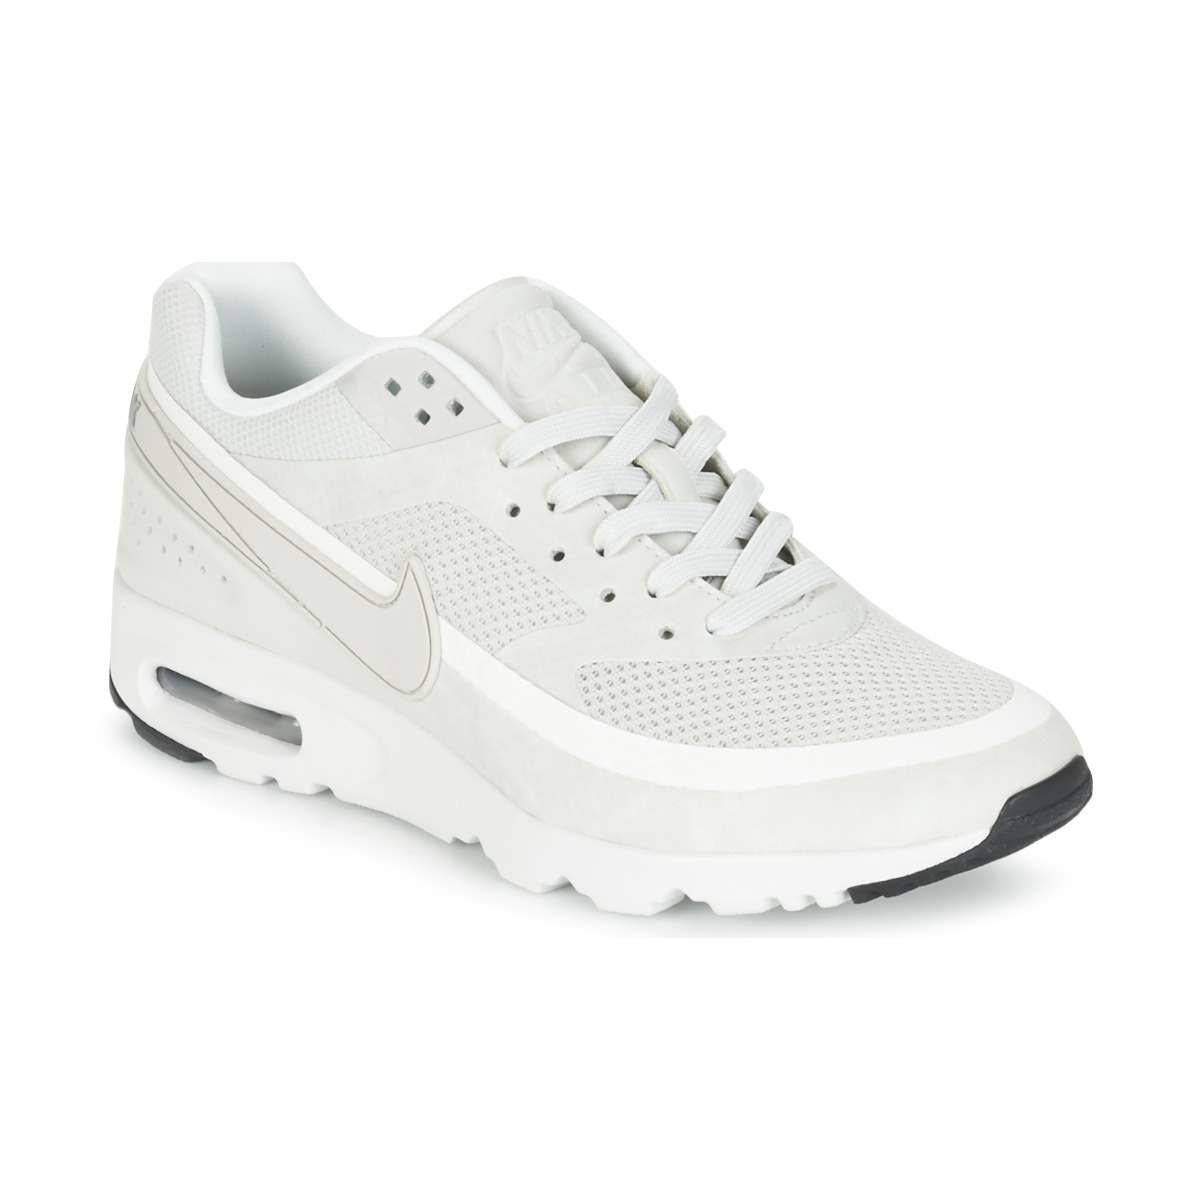 nike air max bw ultra w beige pas cher baskets femme spartoo ventes pas. Black Bedroom Furniture Sets. Home Design Ideas